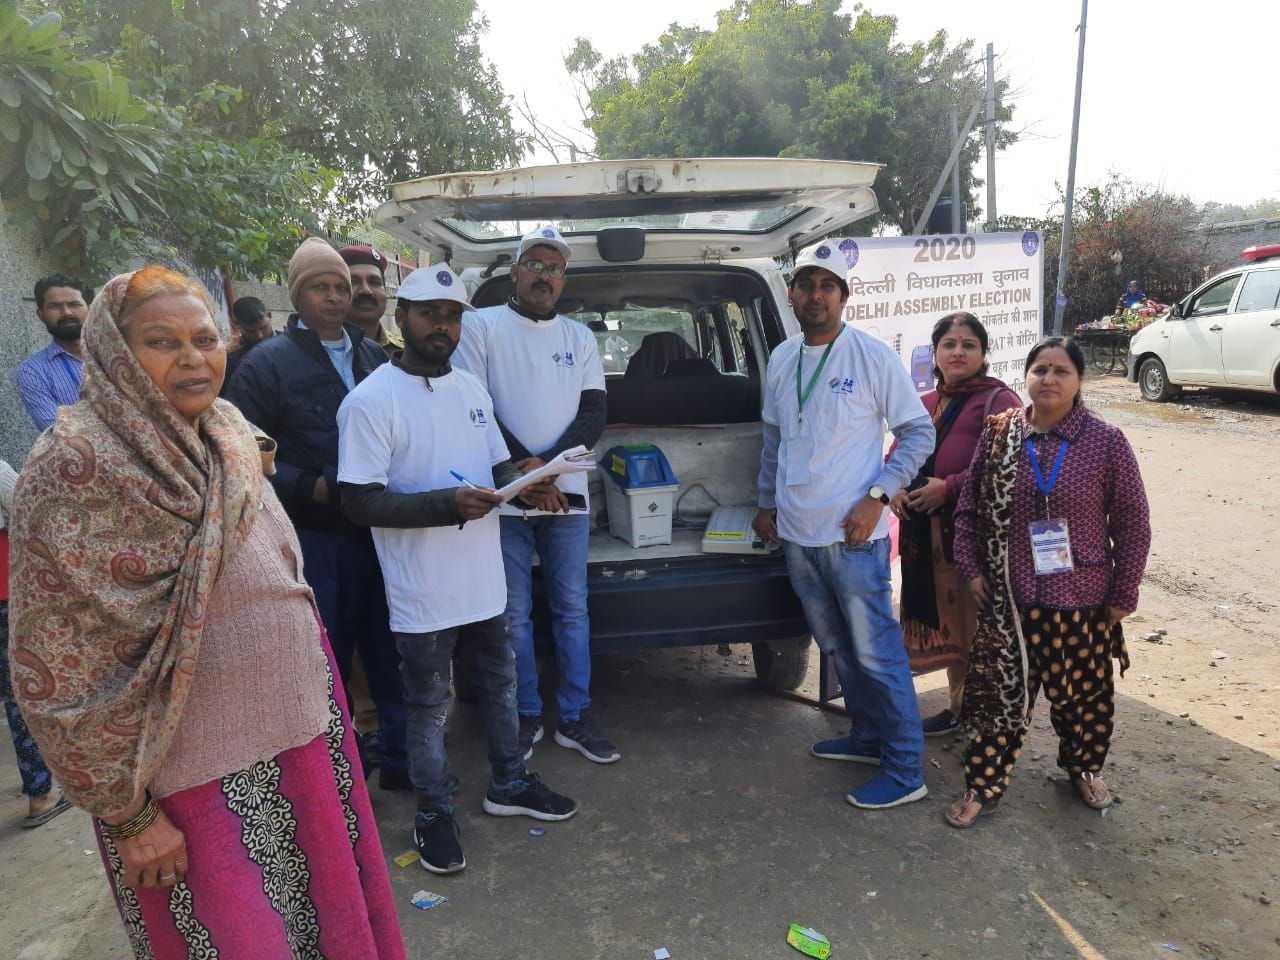 Voter Awareness Campaign in Low Voter Turnout areas in Badarpur Assembly Constituency